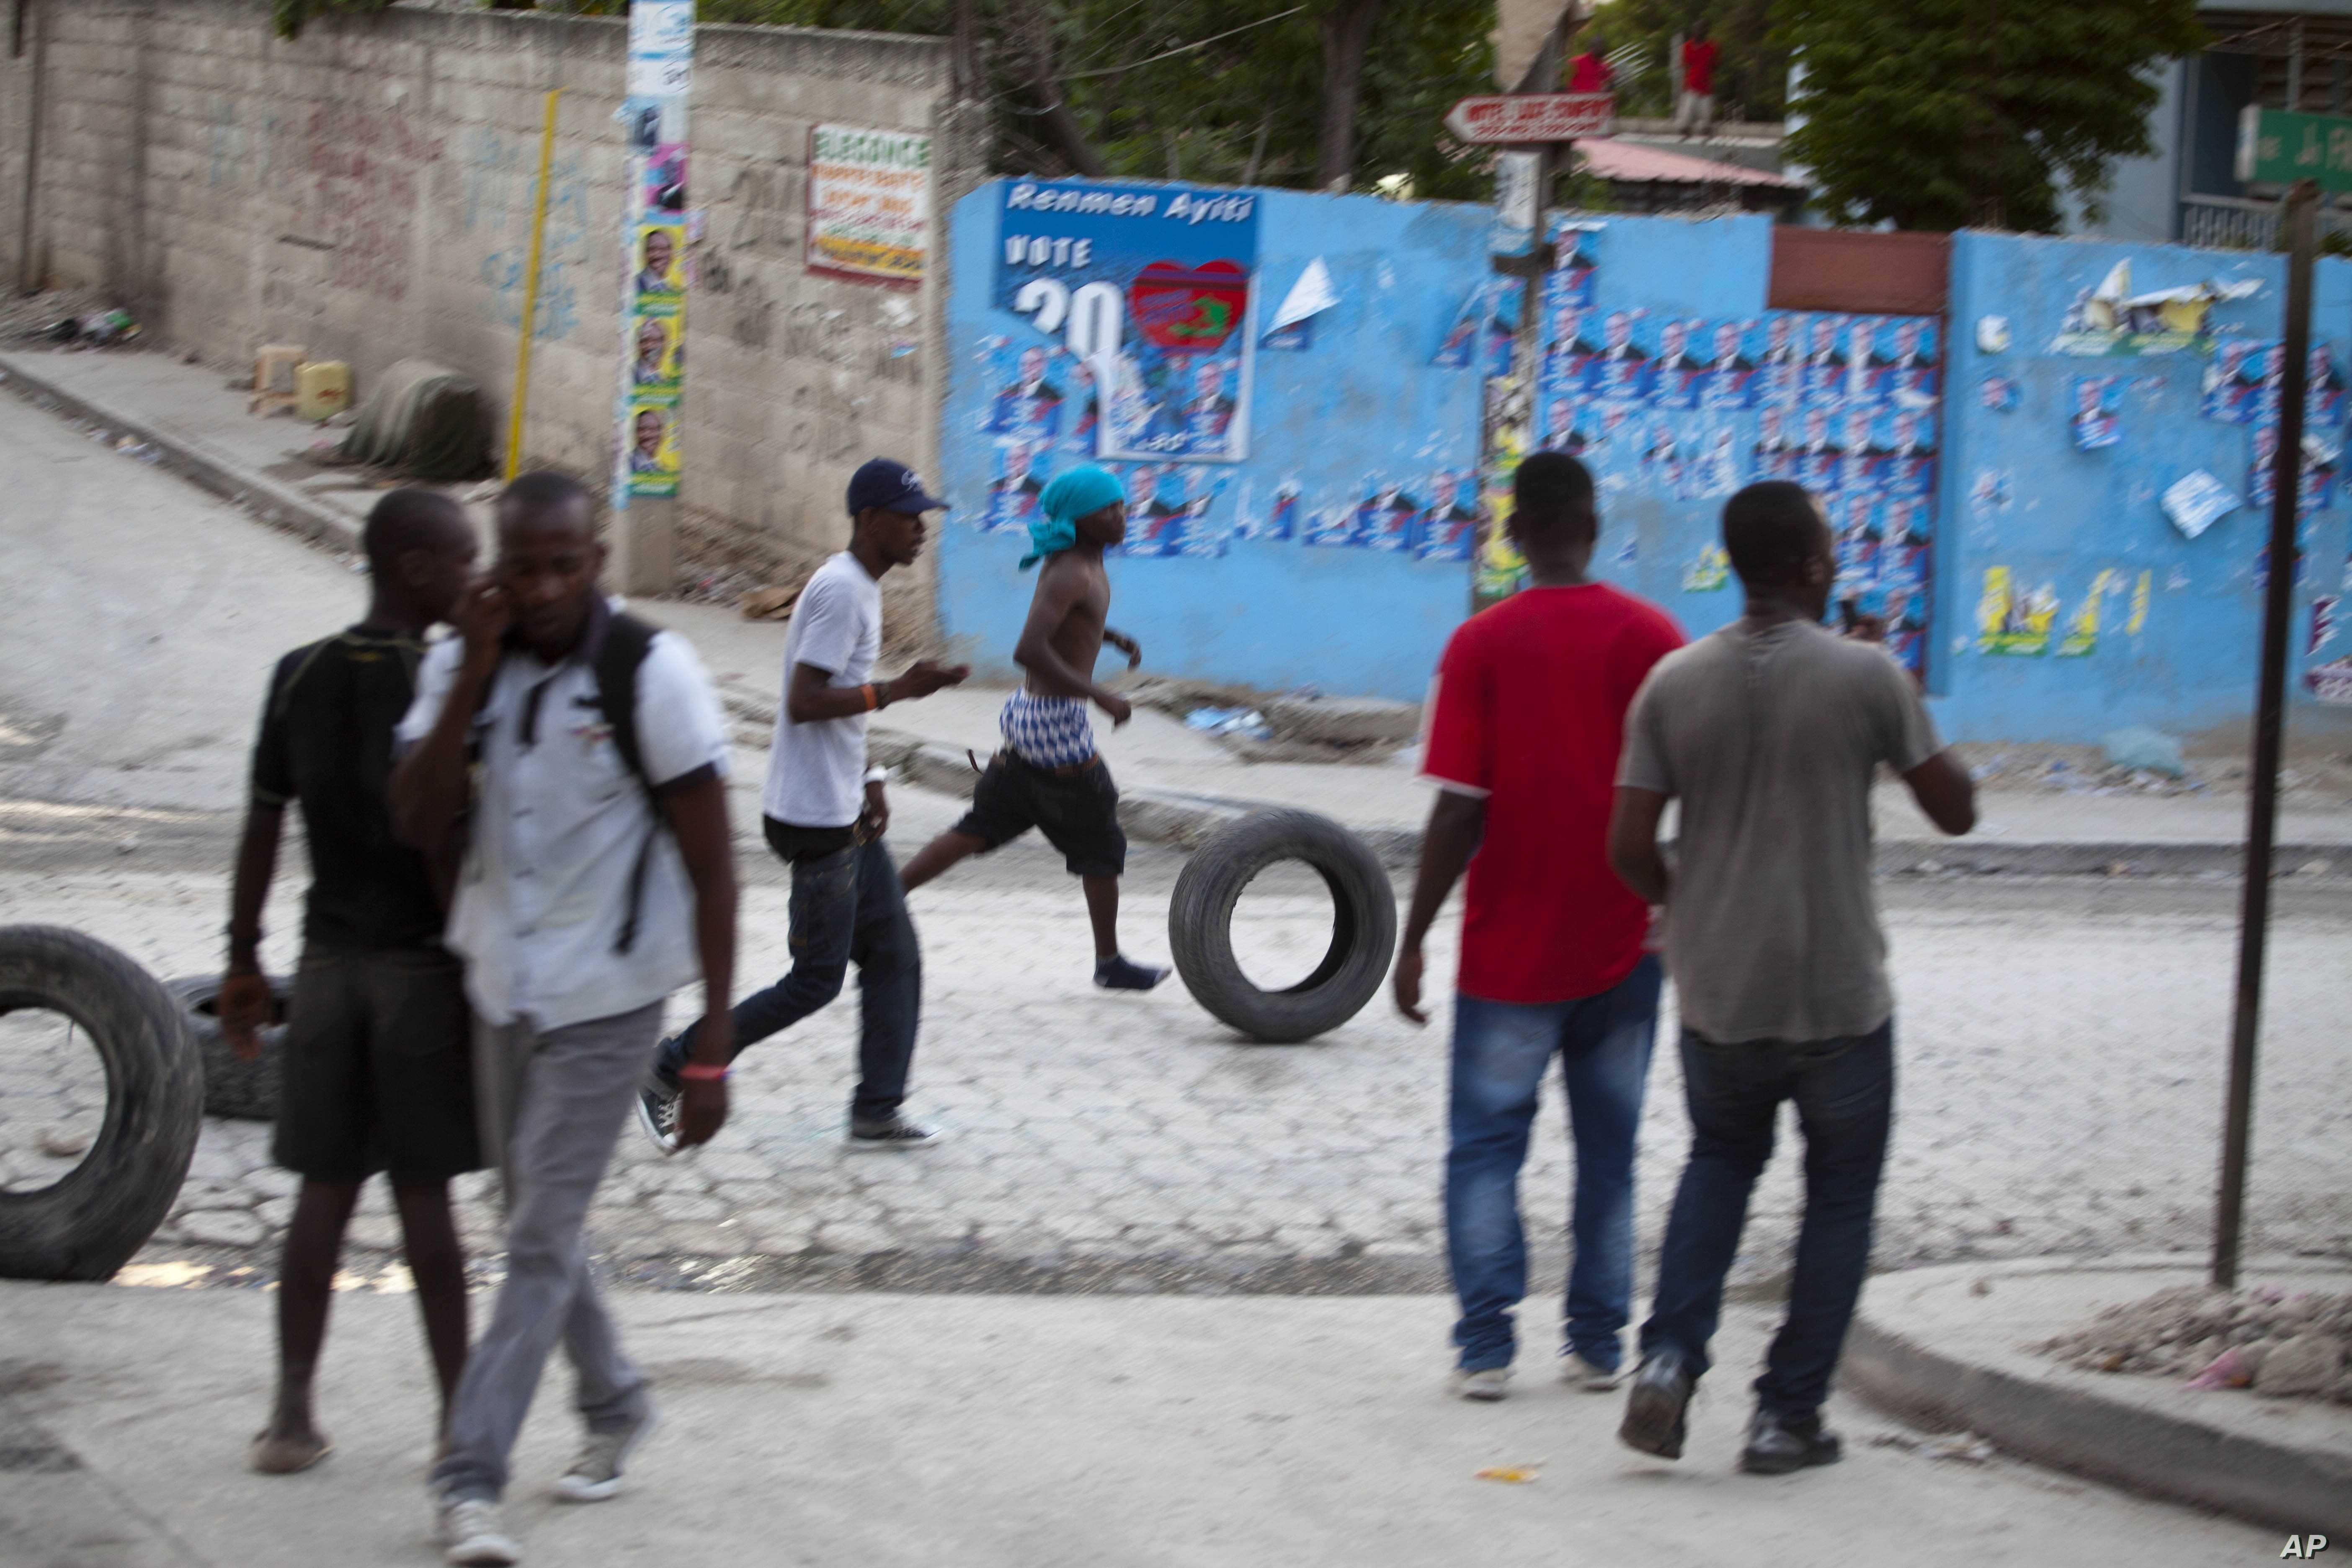 Supporters of Presidential candidate Moise Jean-Charles move tires before burning them during protests against official results just announced by the Electoral Council in the neighborhood of Delmas 33, Port-au-Prince, Haiti, Thursday Nov. 5, 2015.